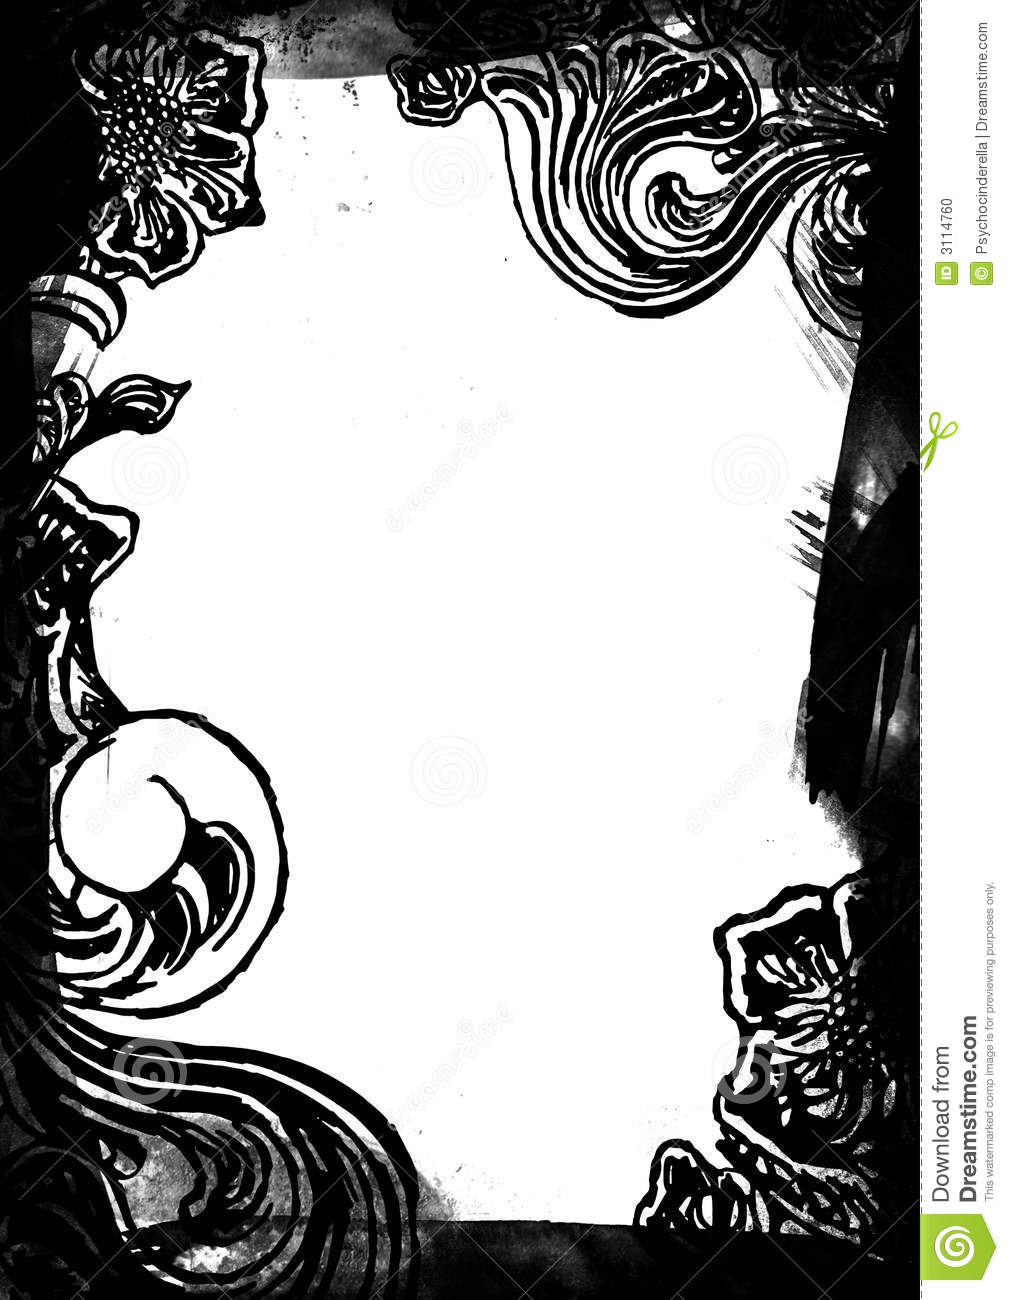 cadre floral noir et blanc illustration stock image du illustr 3114760. Black Bedroom Furniture Sets. Home Design Ideas